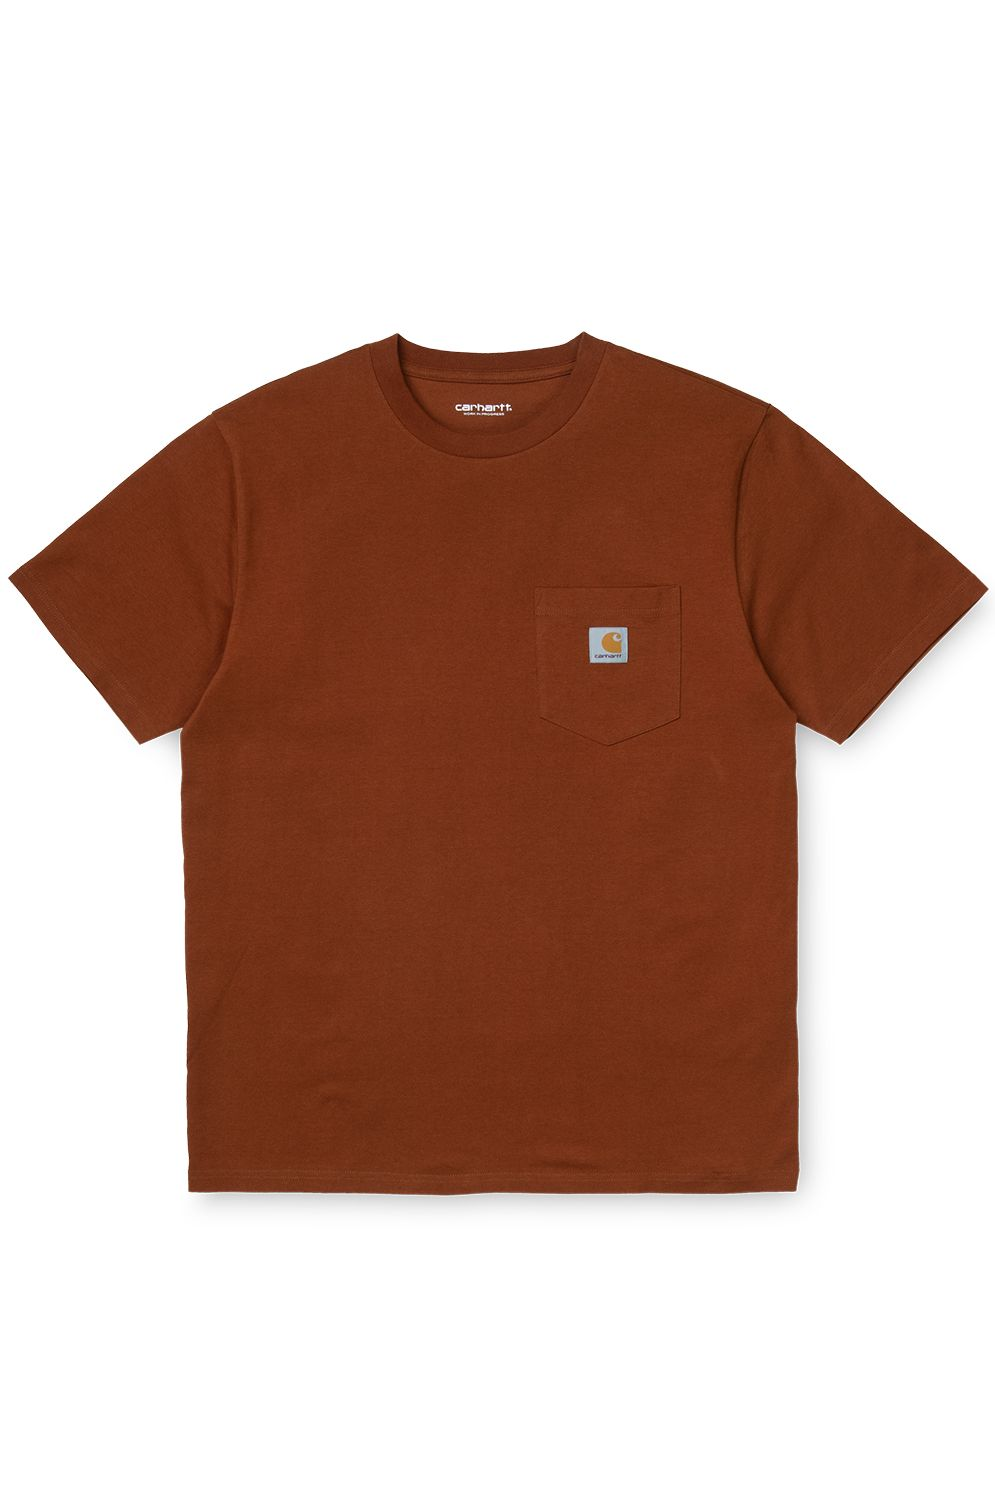 T-Shirt Carhartt WIP S/S POCKET T-SHIRT Brandy